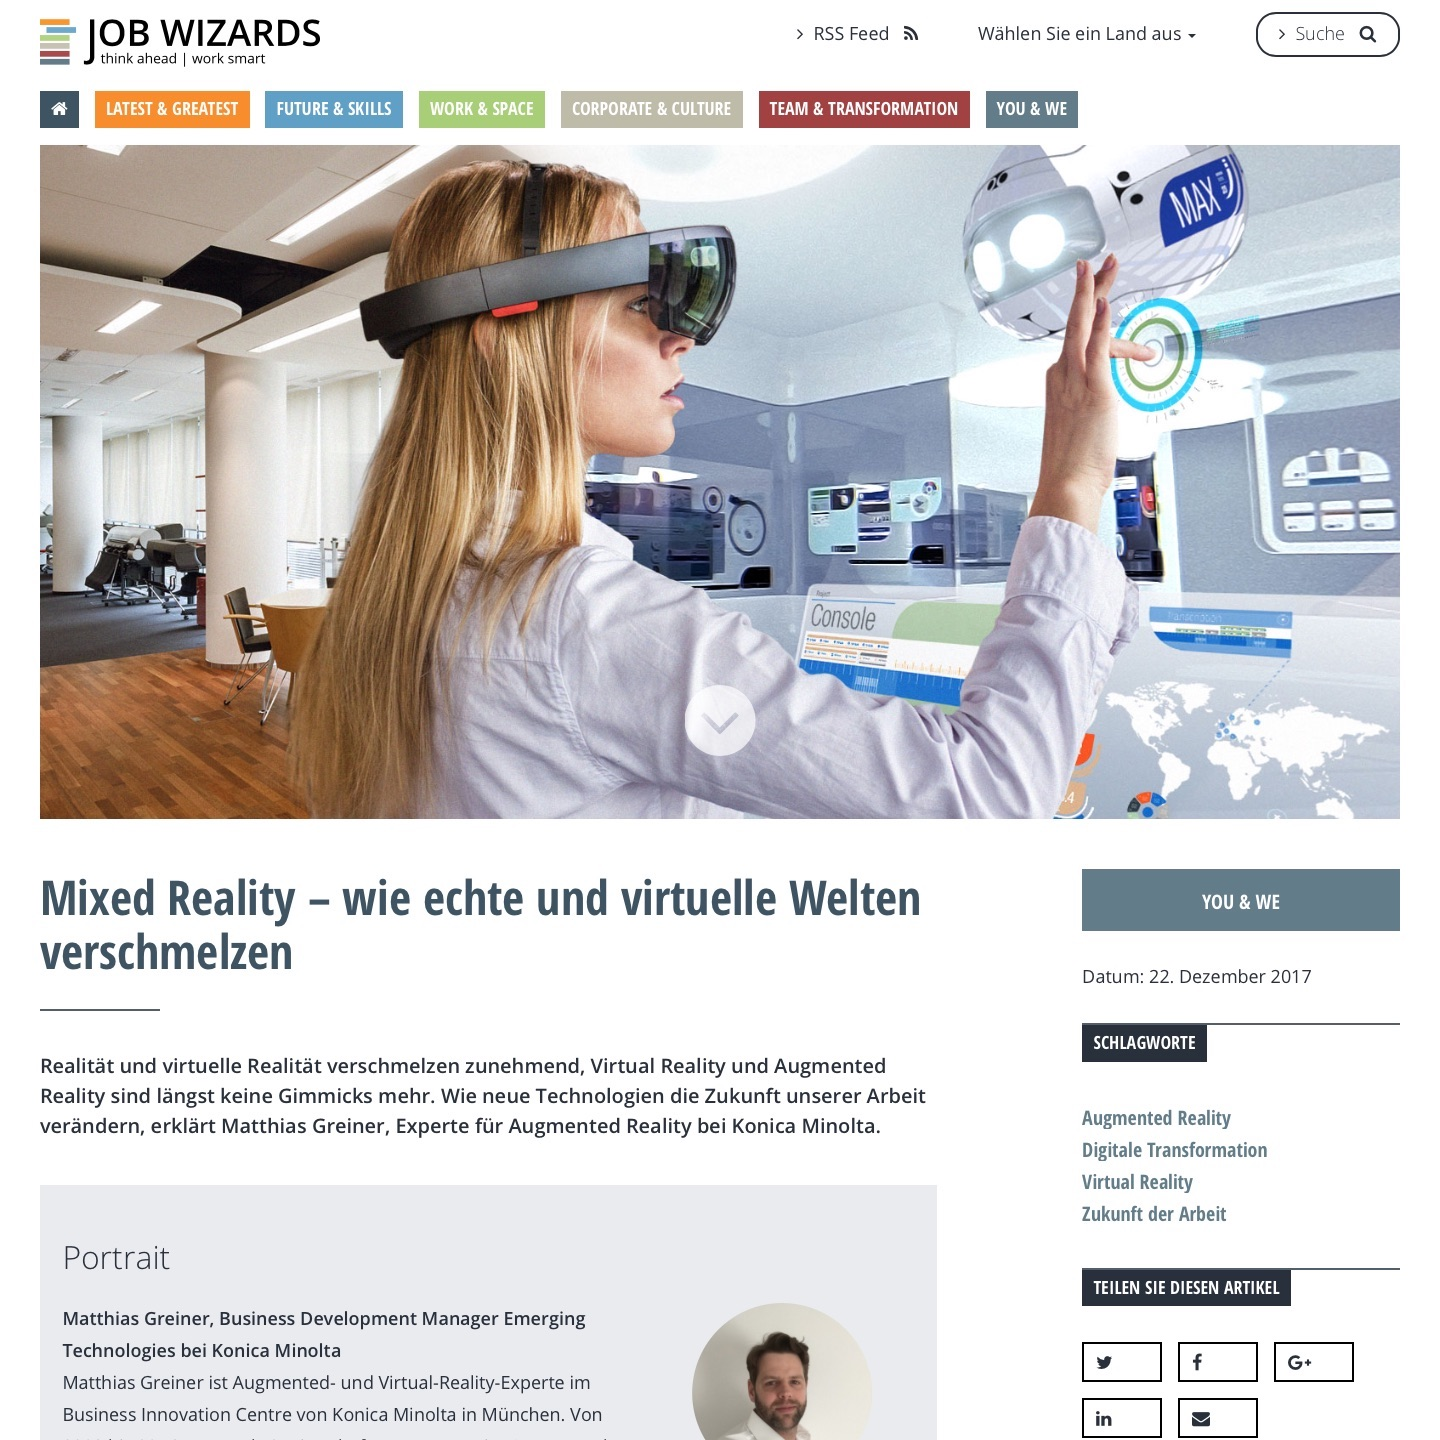 Job Wizards Mixed Reality